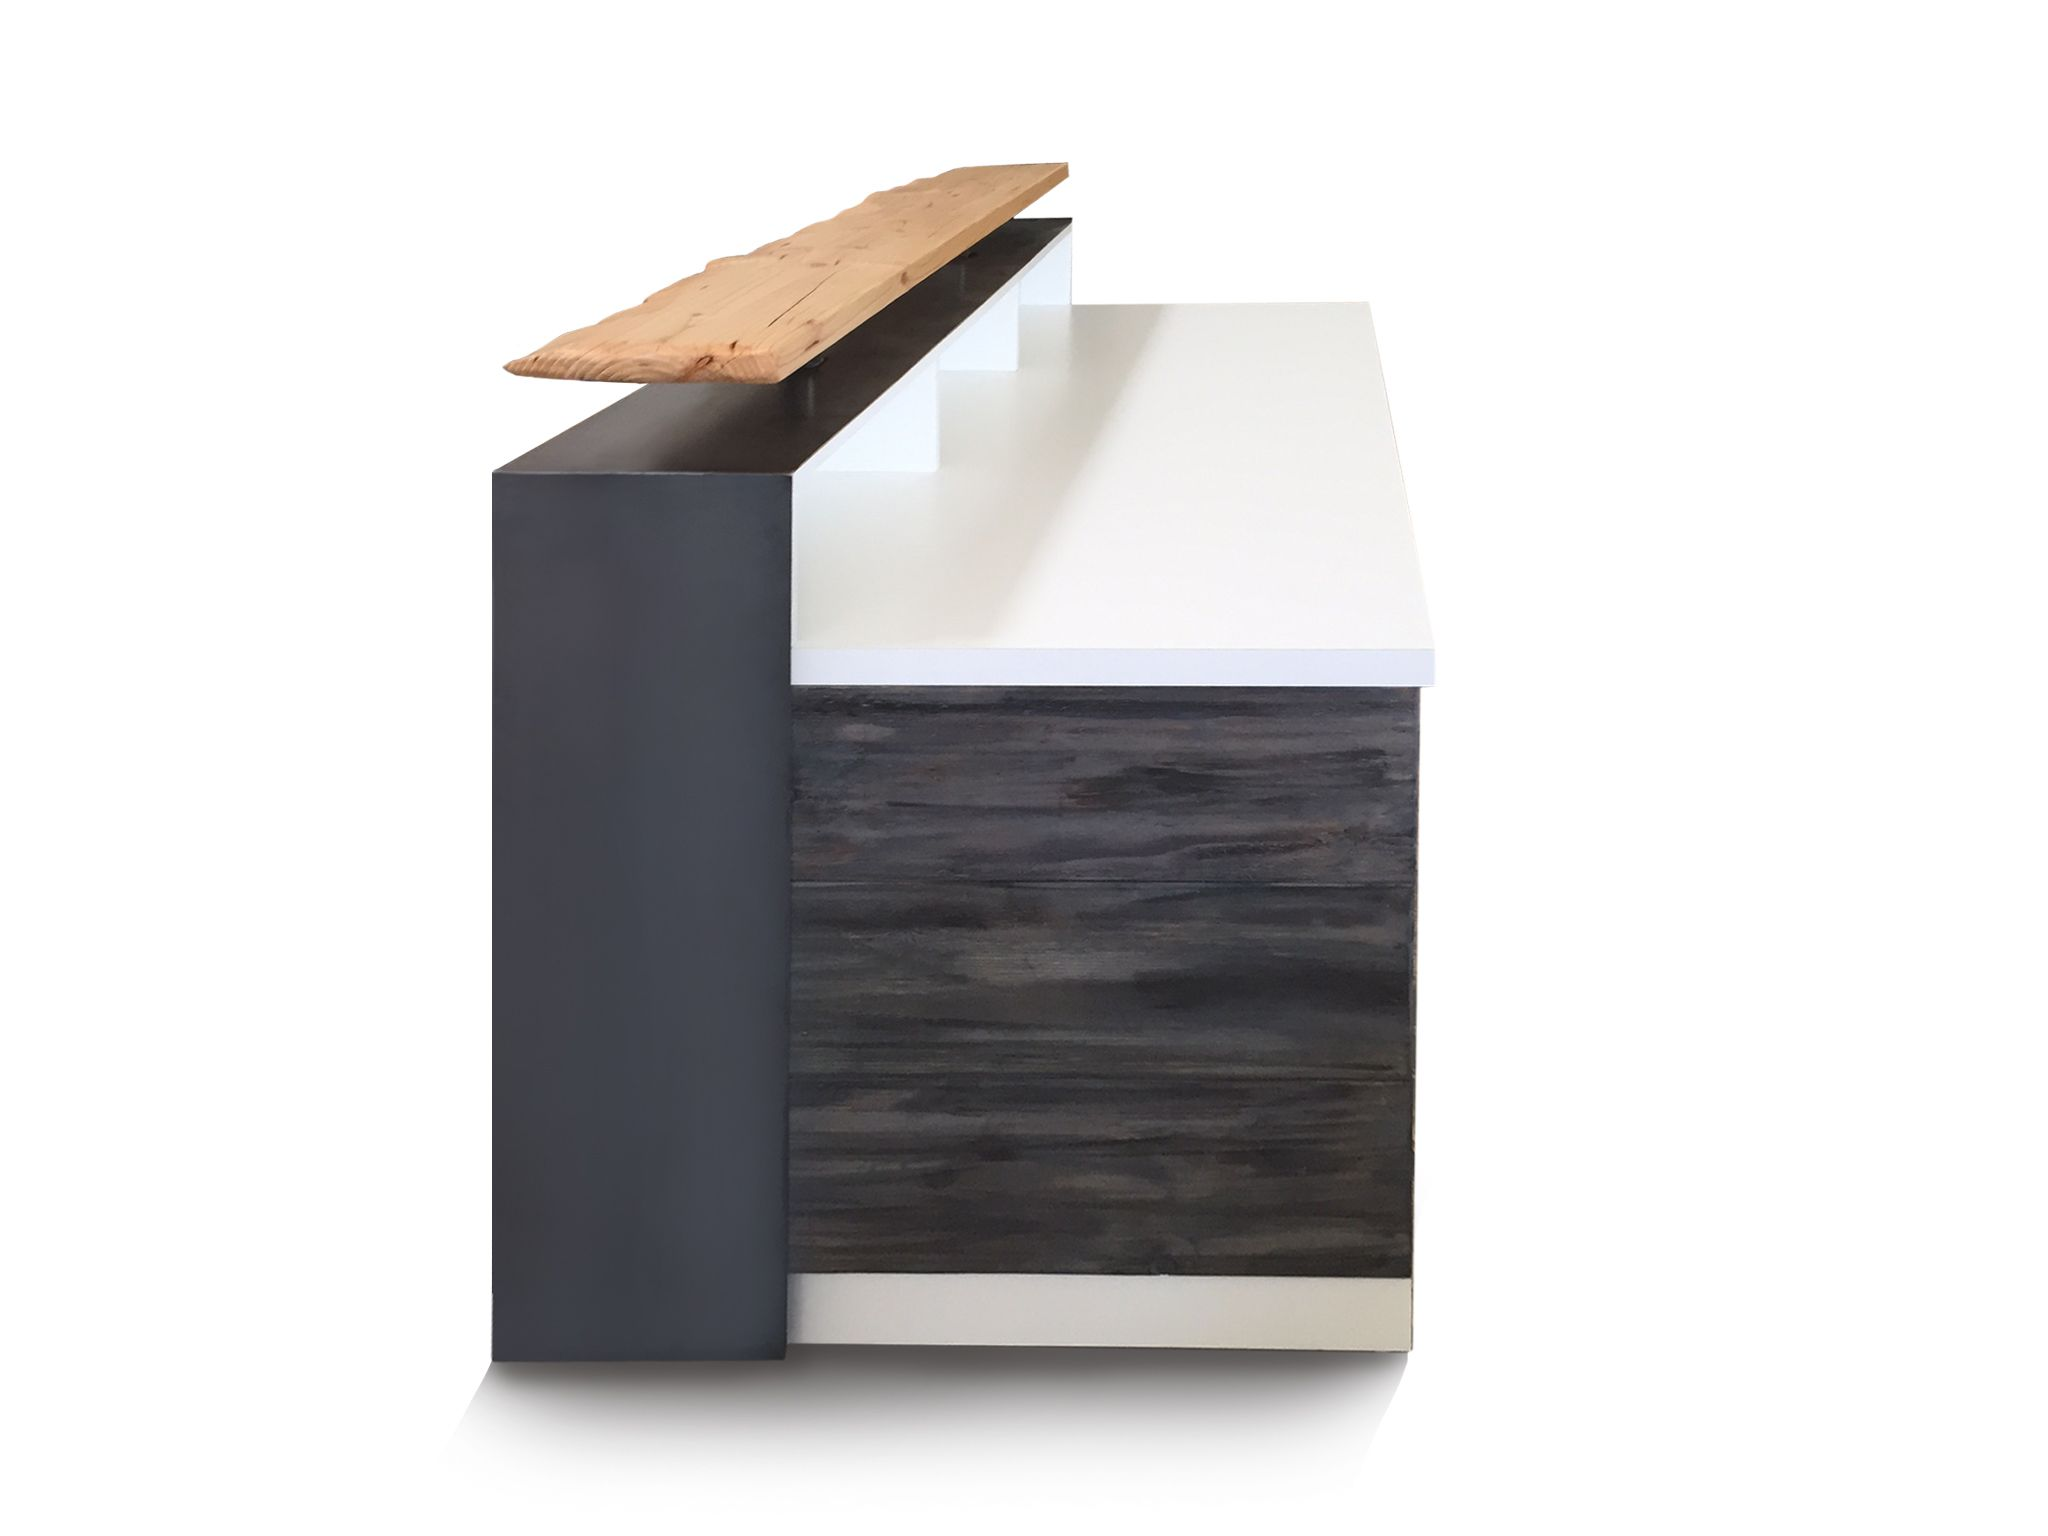 Sale Counter Design Buy A Hand Made 2 White Reception Desk Or Sales Counter